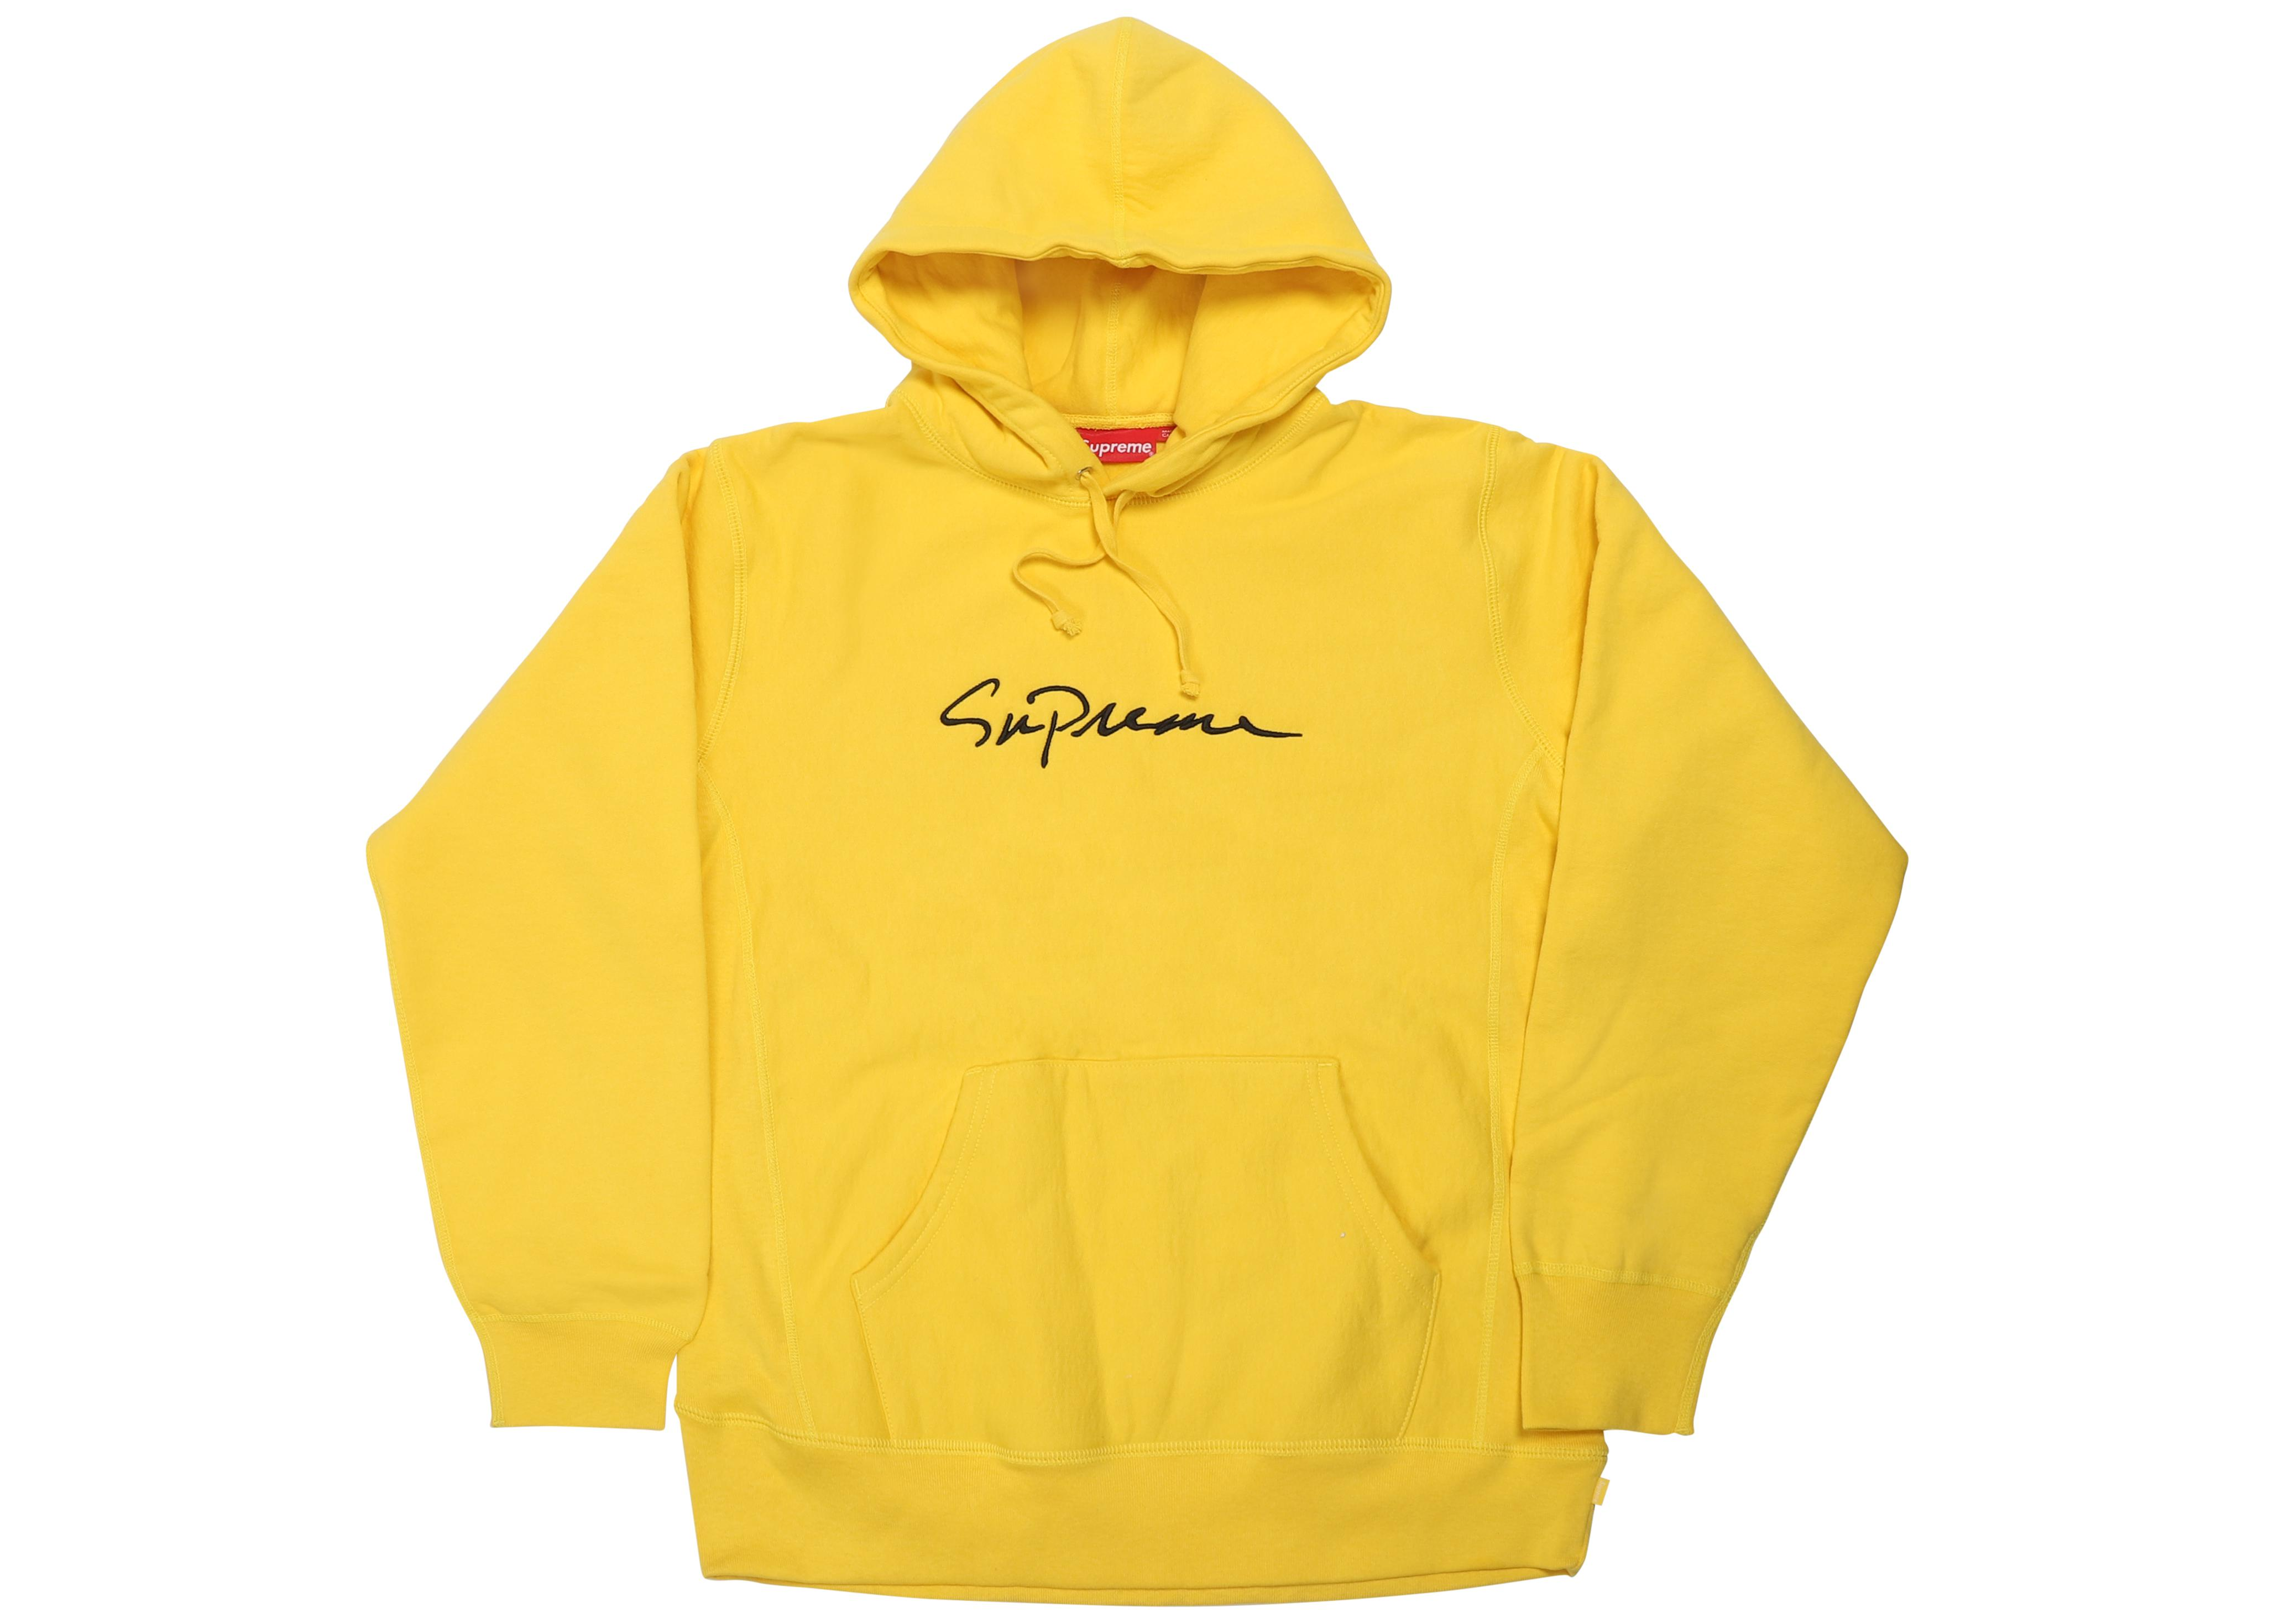 31f9a7139ecd Lyst - Supreme Classic Script Hooded Sweatshirt Yellow in Yellow for Men